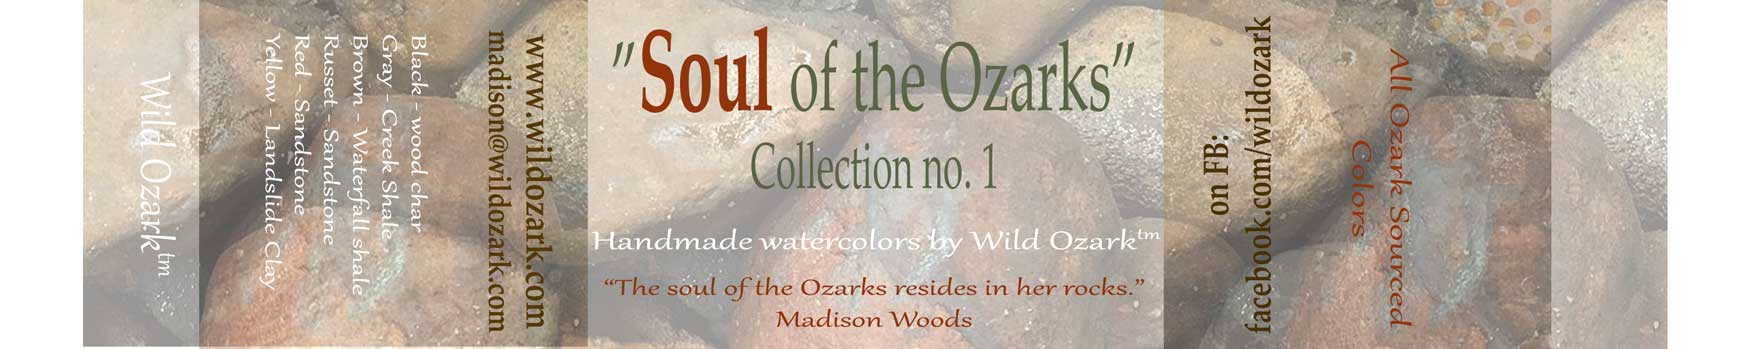 Wrapper for the Soul of the Ozarks watercolor paint tin.